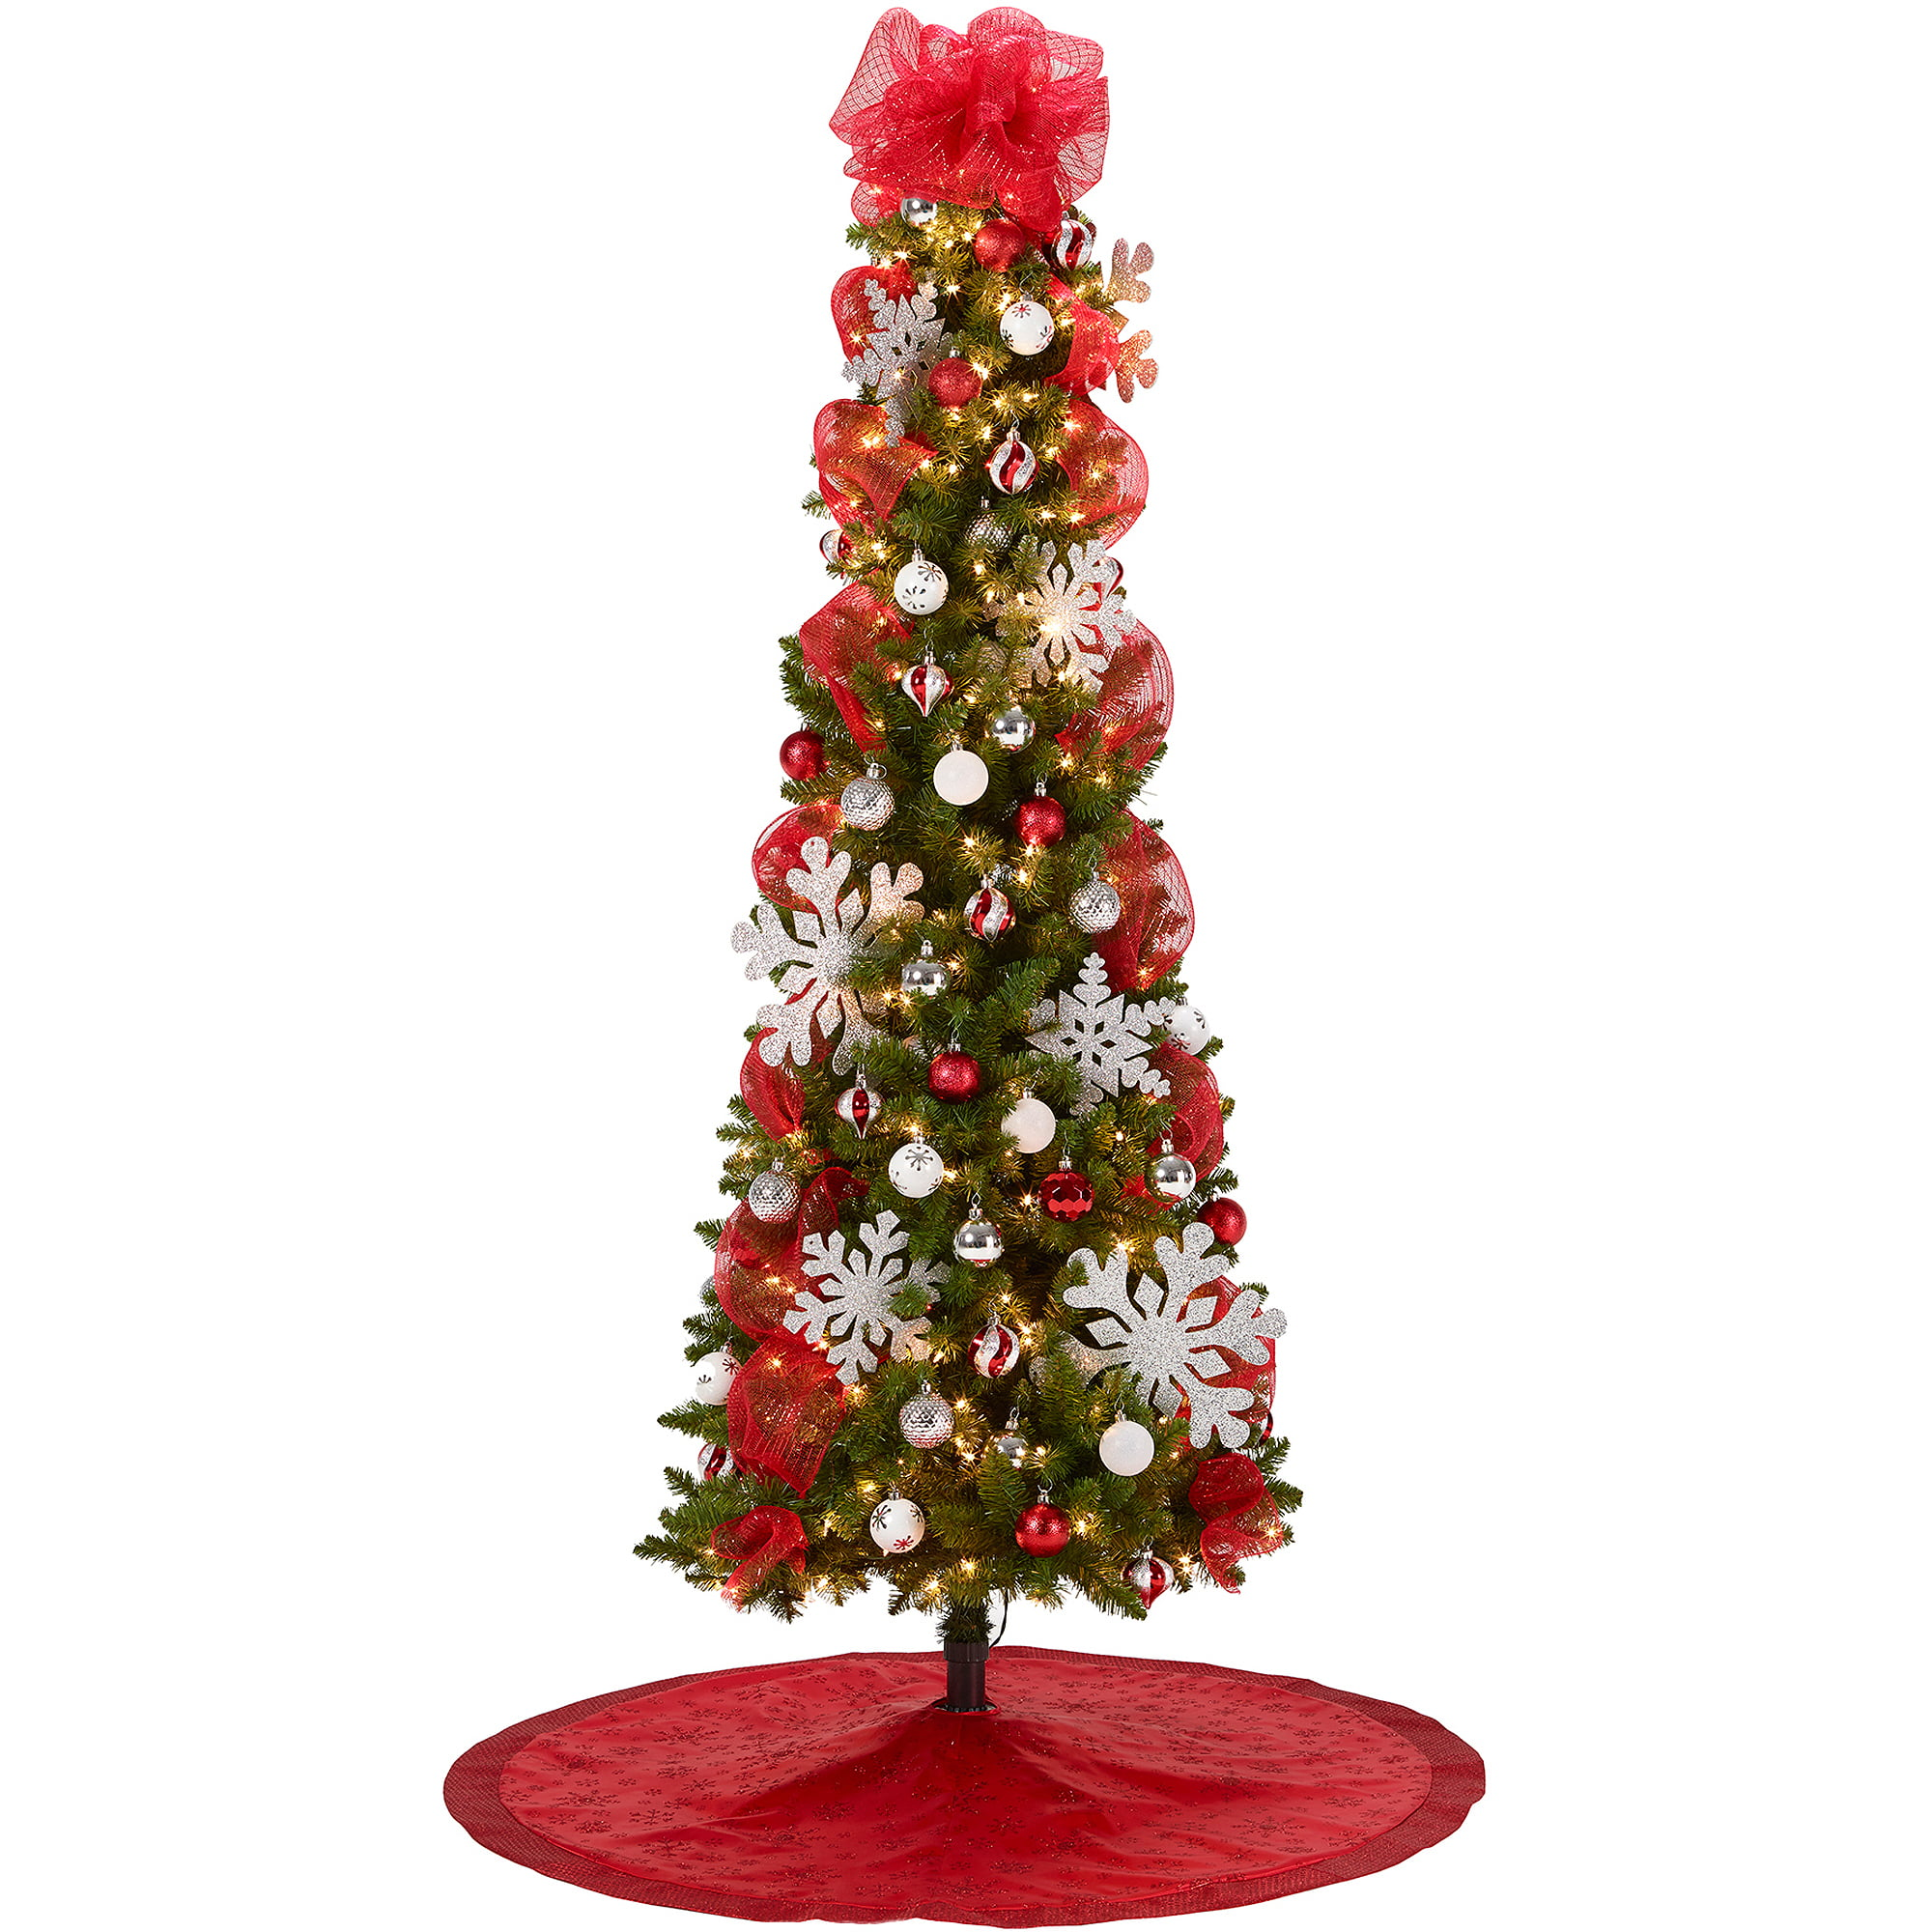 7u0027 Pre Lit Brinkley Pine Christmas Tree With Red And Silver Decoration Kit    Walmart.com